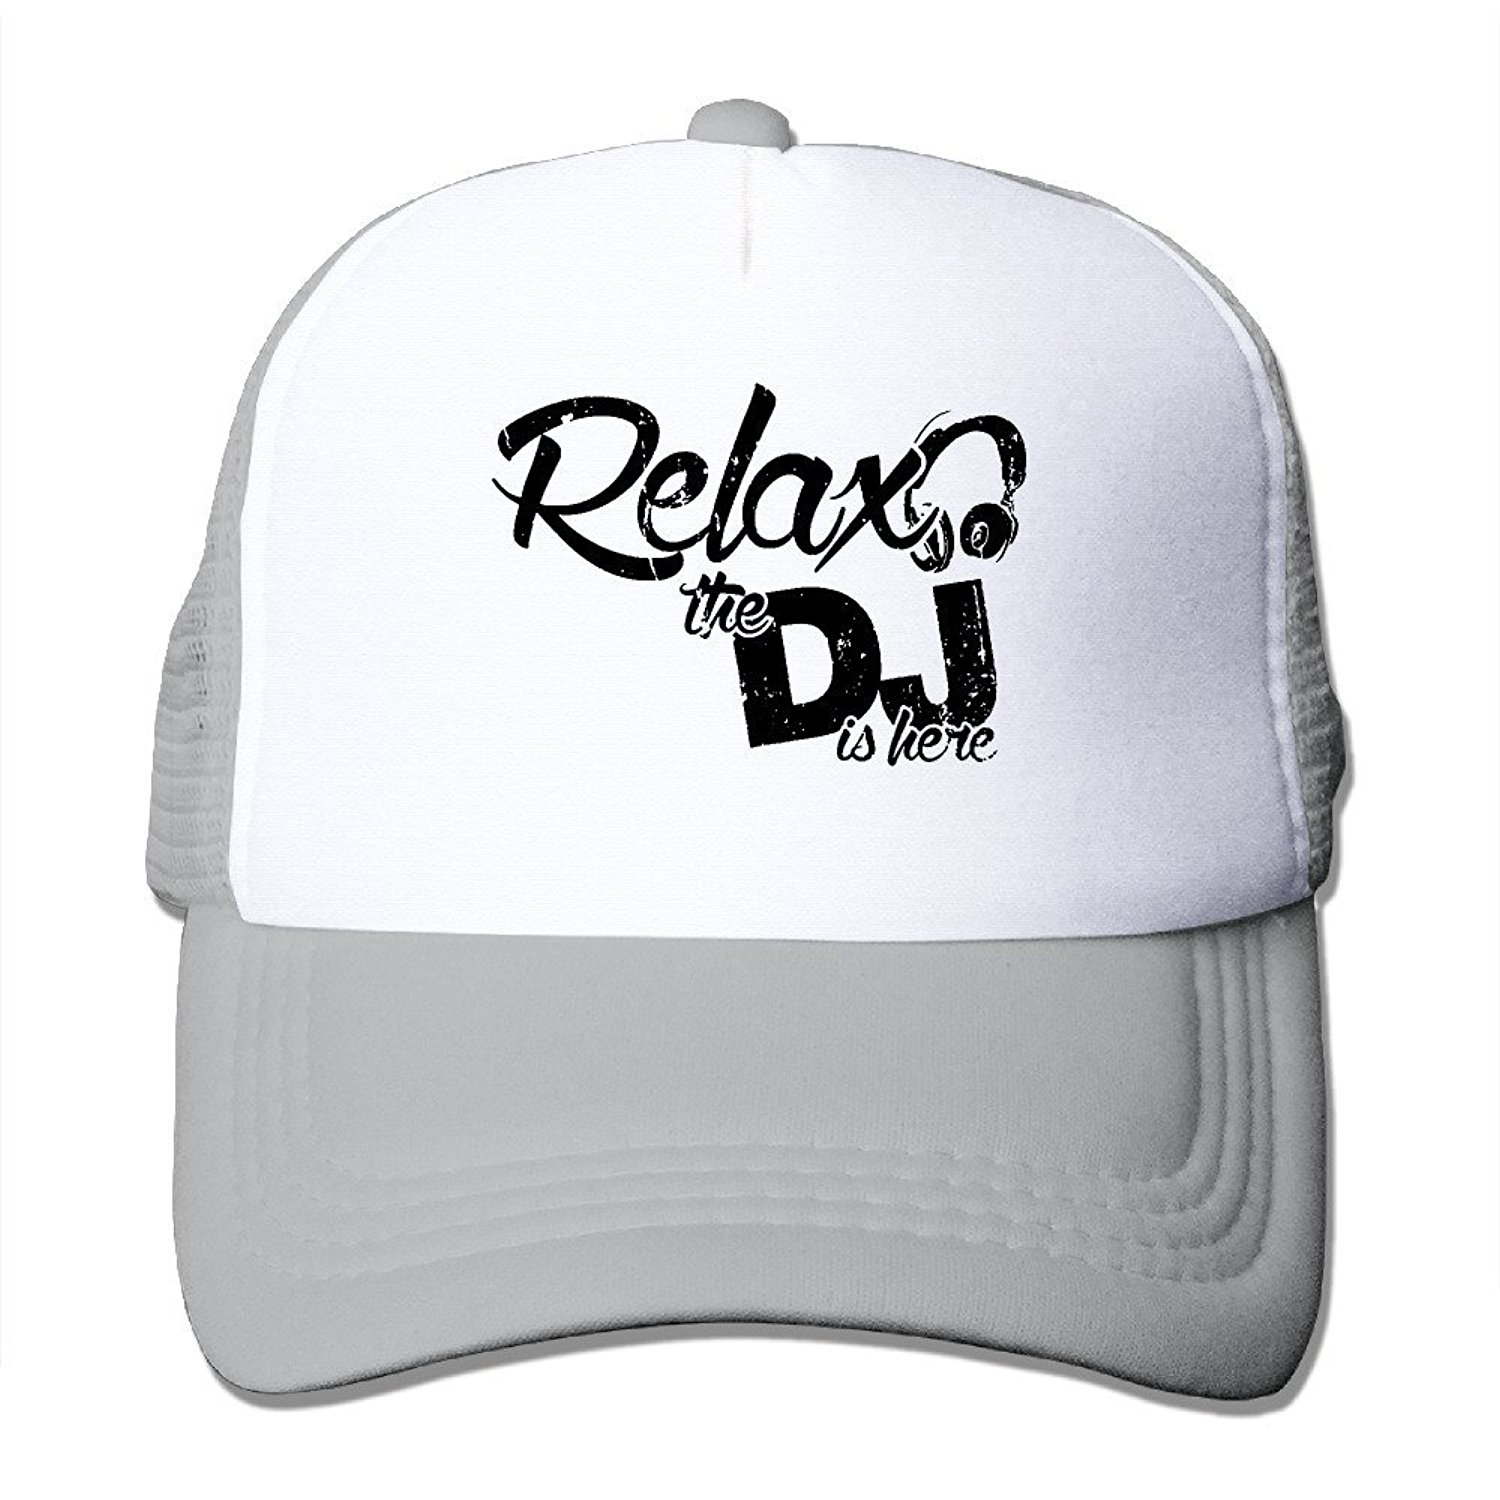 c29f0a05110 Get Quotations · Crazy Popo Outdoor Sports Hat - Relax The DJ Is Here  Adjustable Trucker Hat Cap Adult